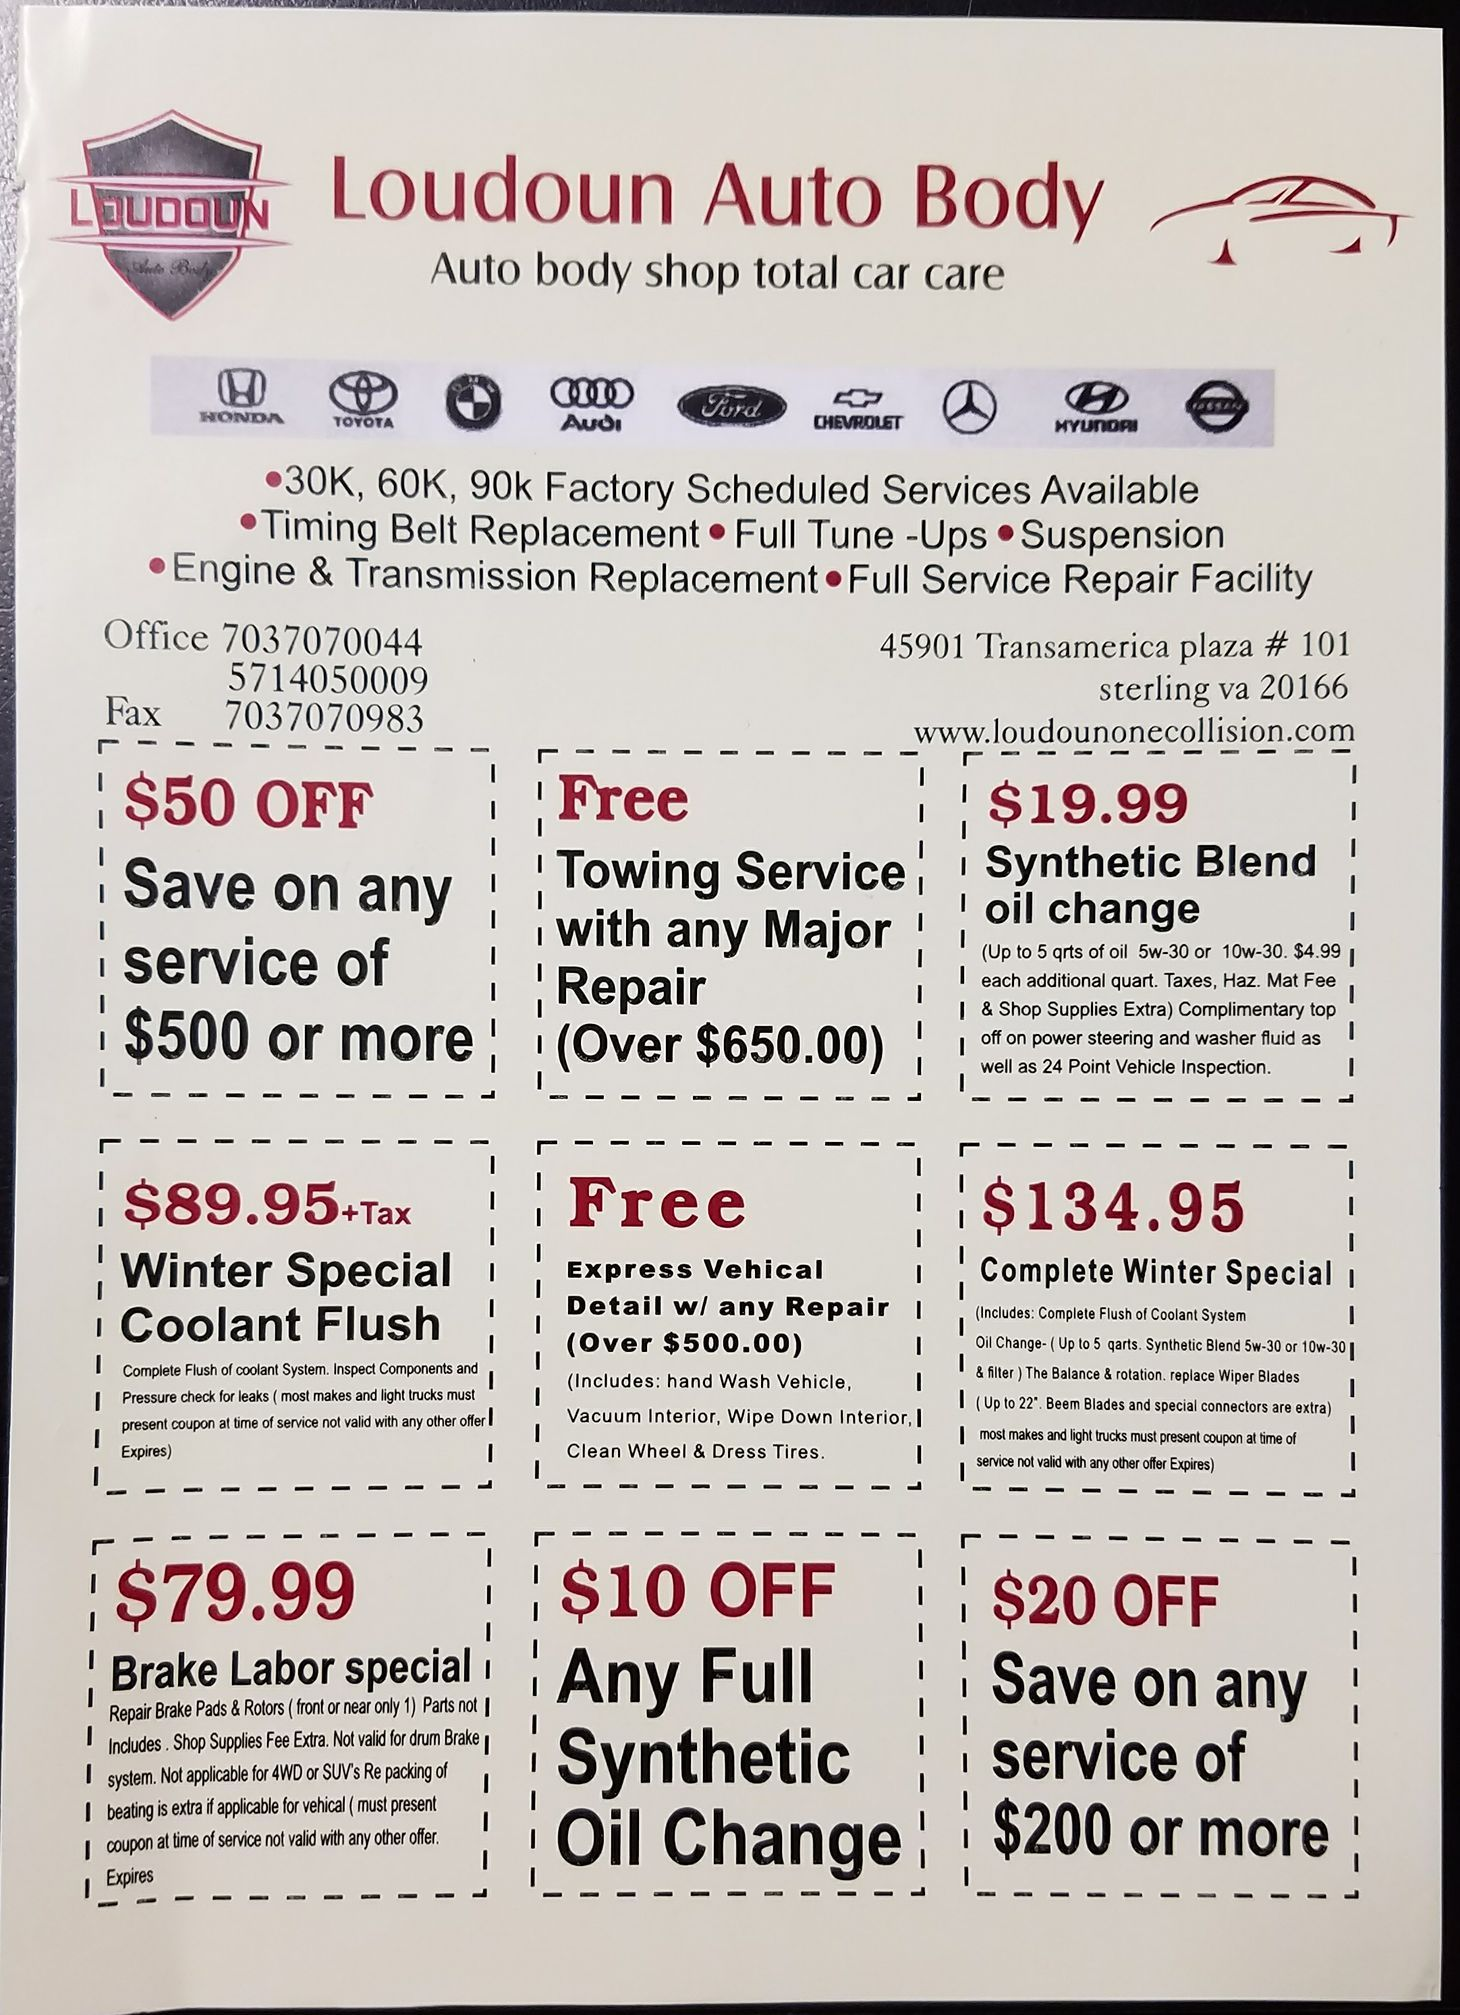 Special Discounts Offered At Loudoun Auto Body Call Today To Get A